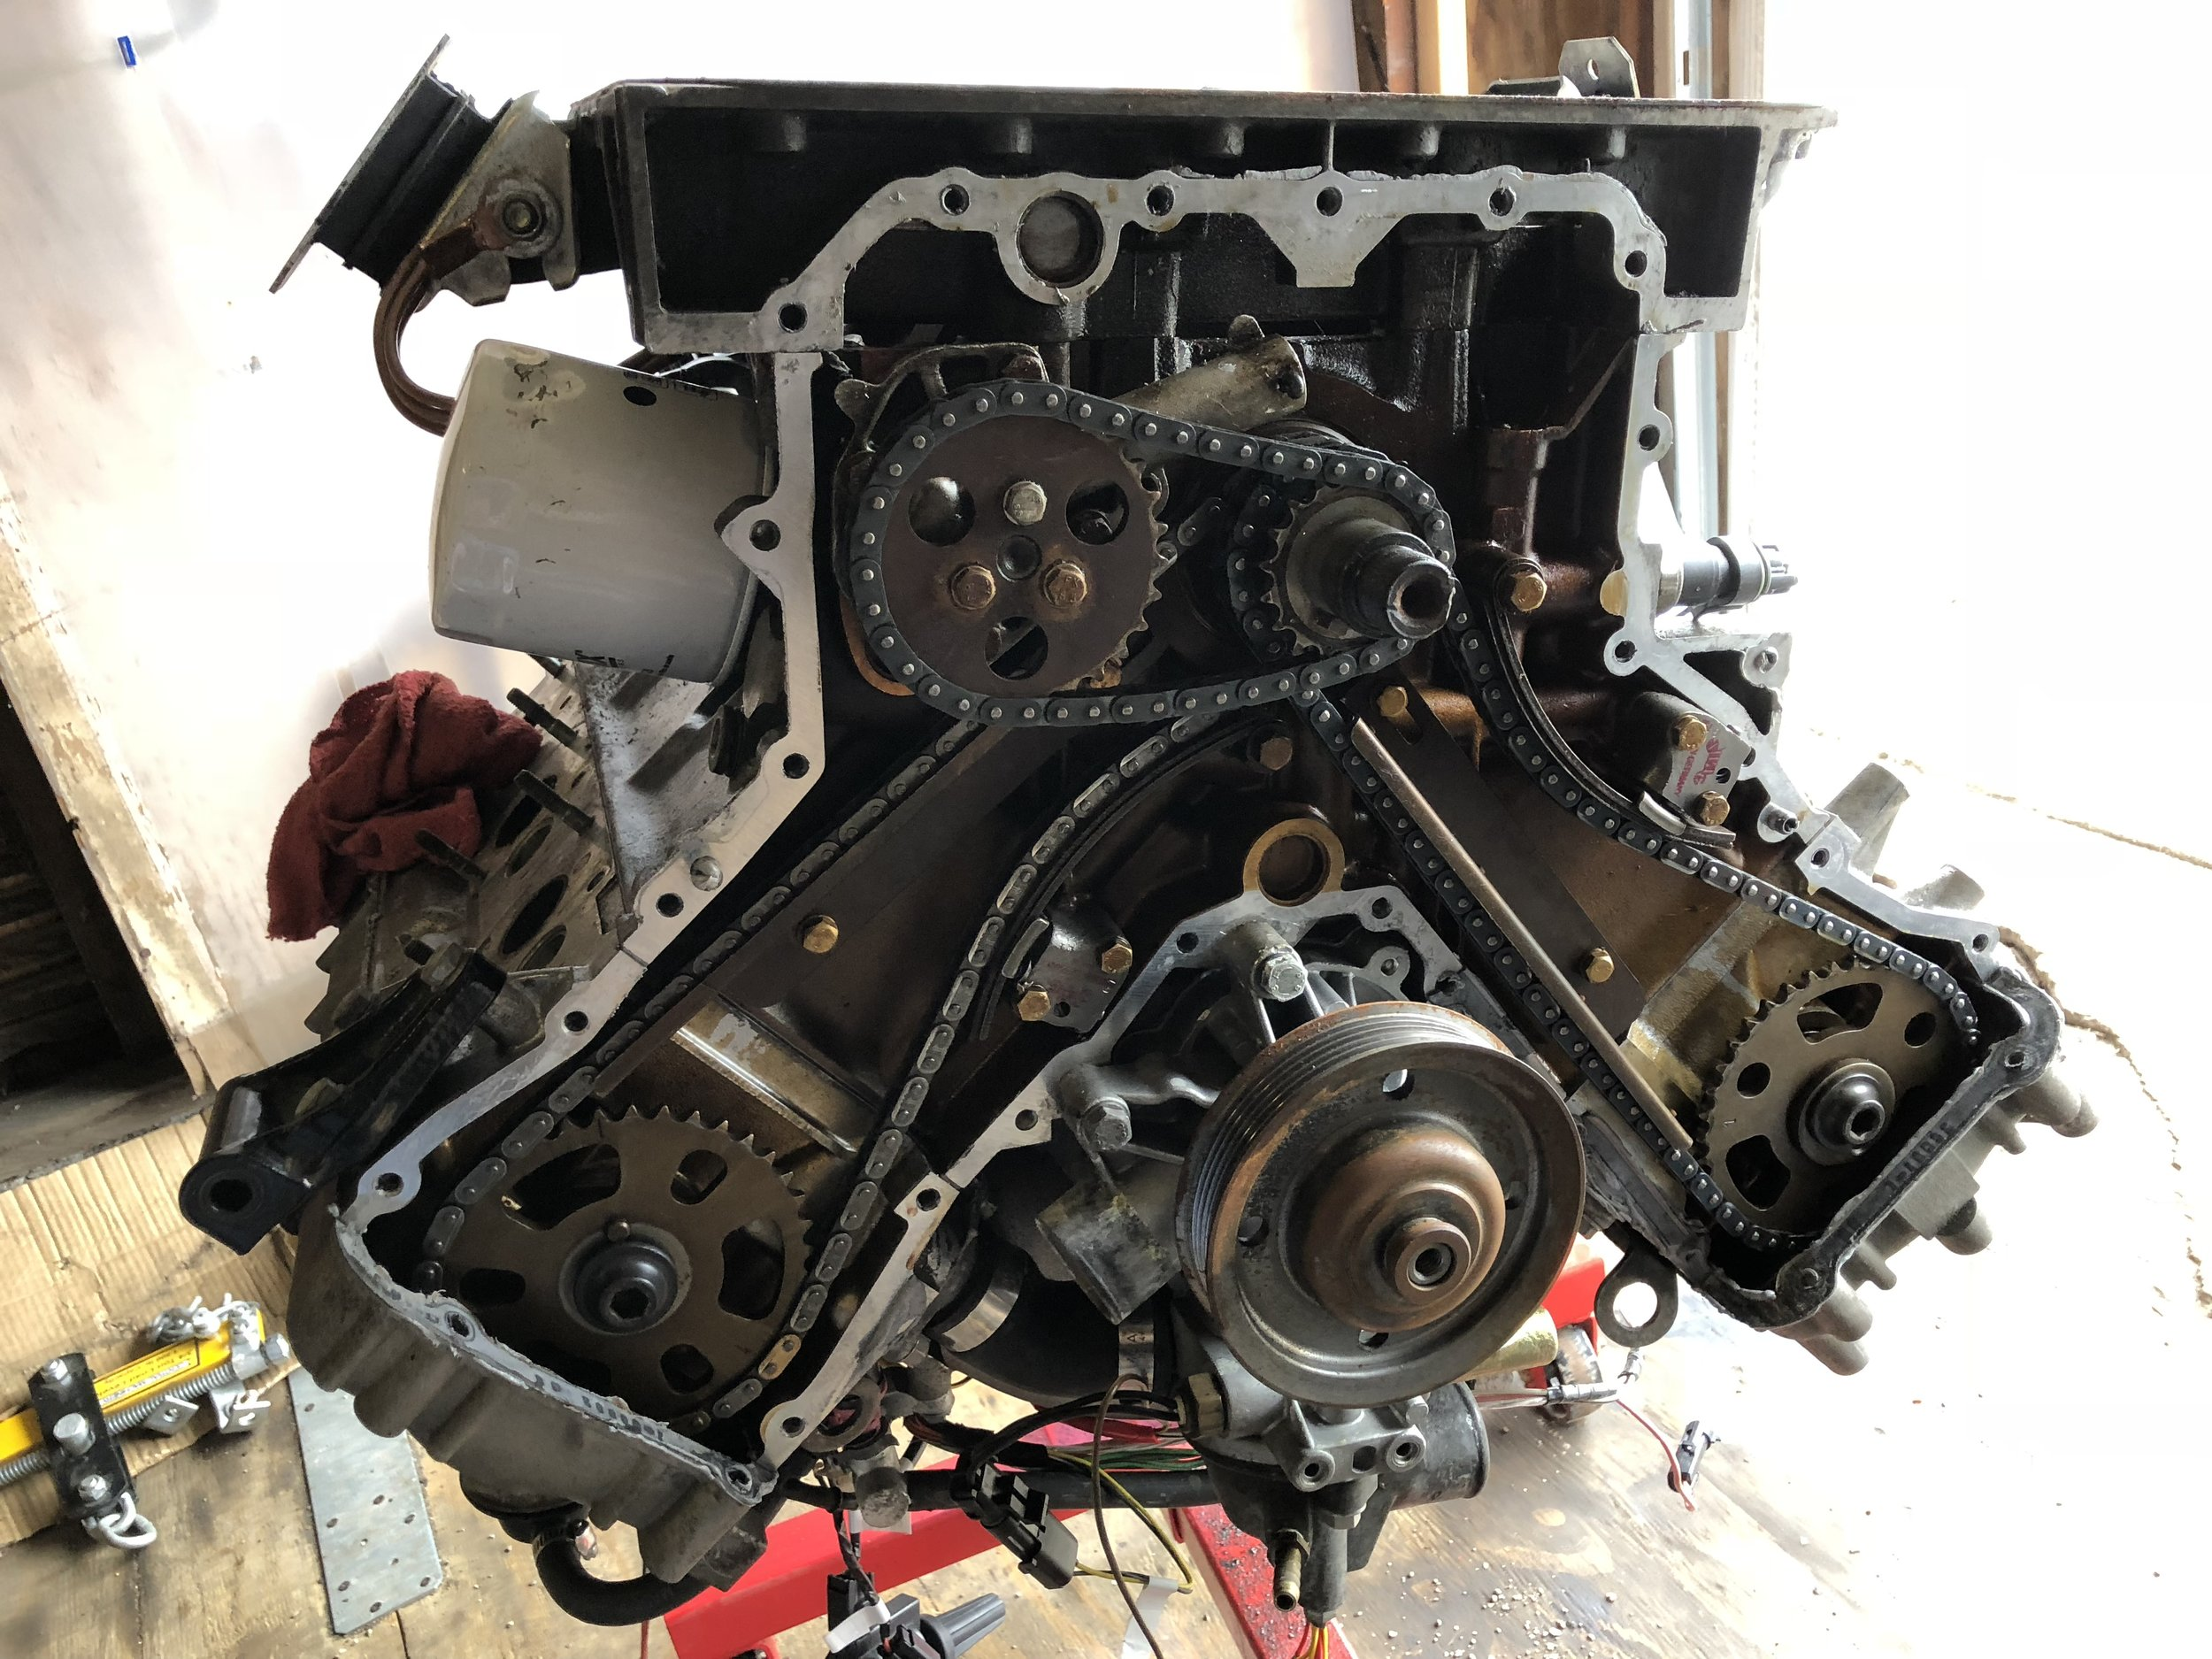 The upside down engine with the timing cover removed. The oil pump is still mounted behind its sprocket.